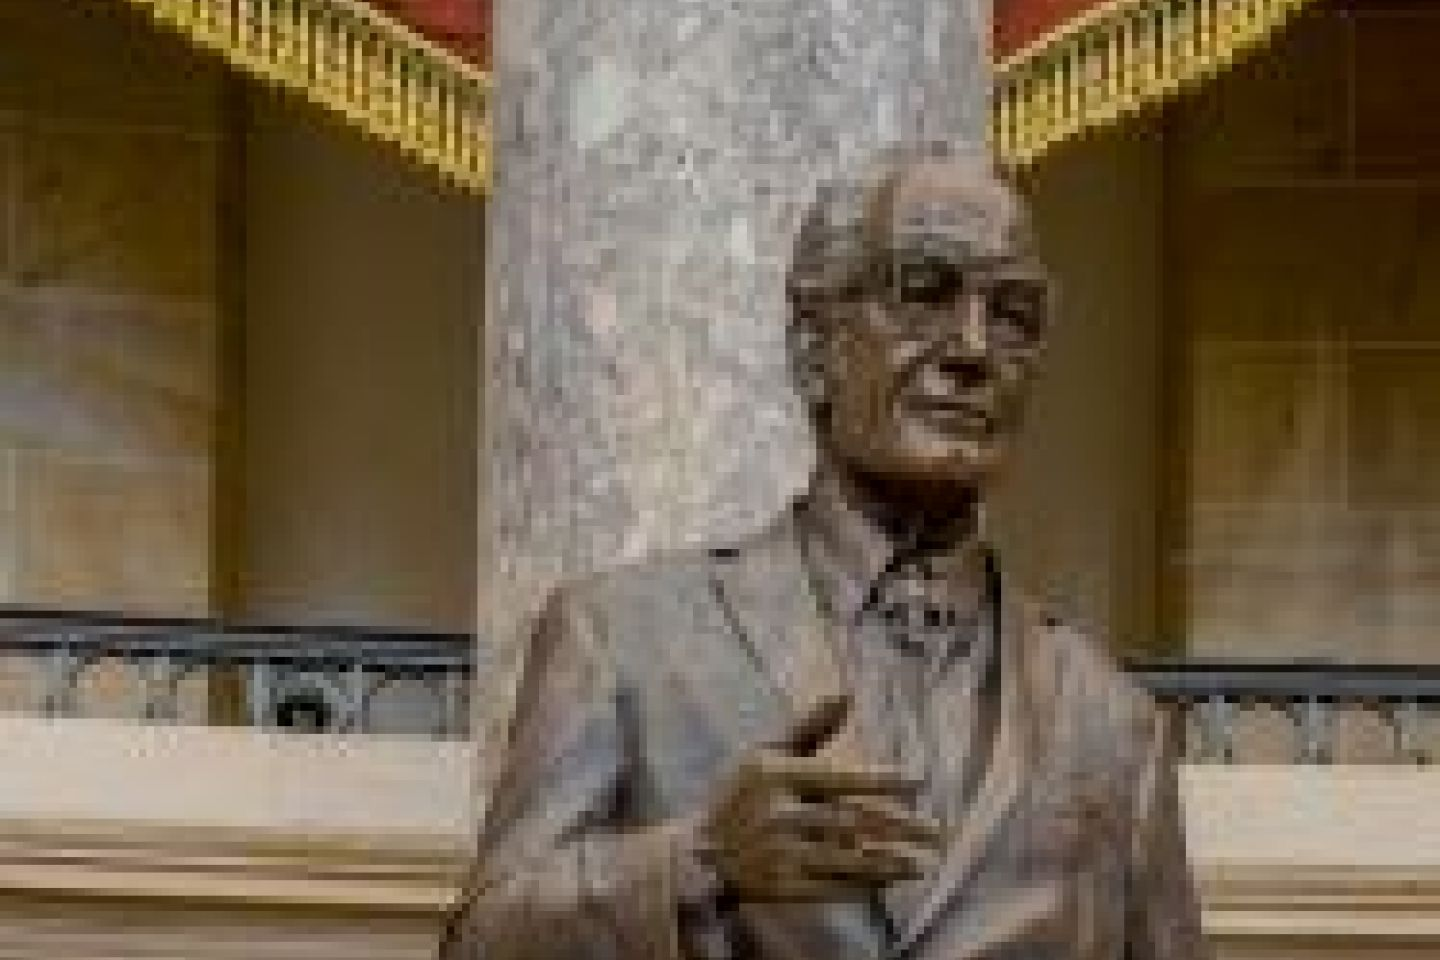 Statue of Barry Goldwater